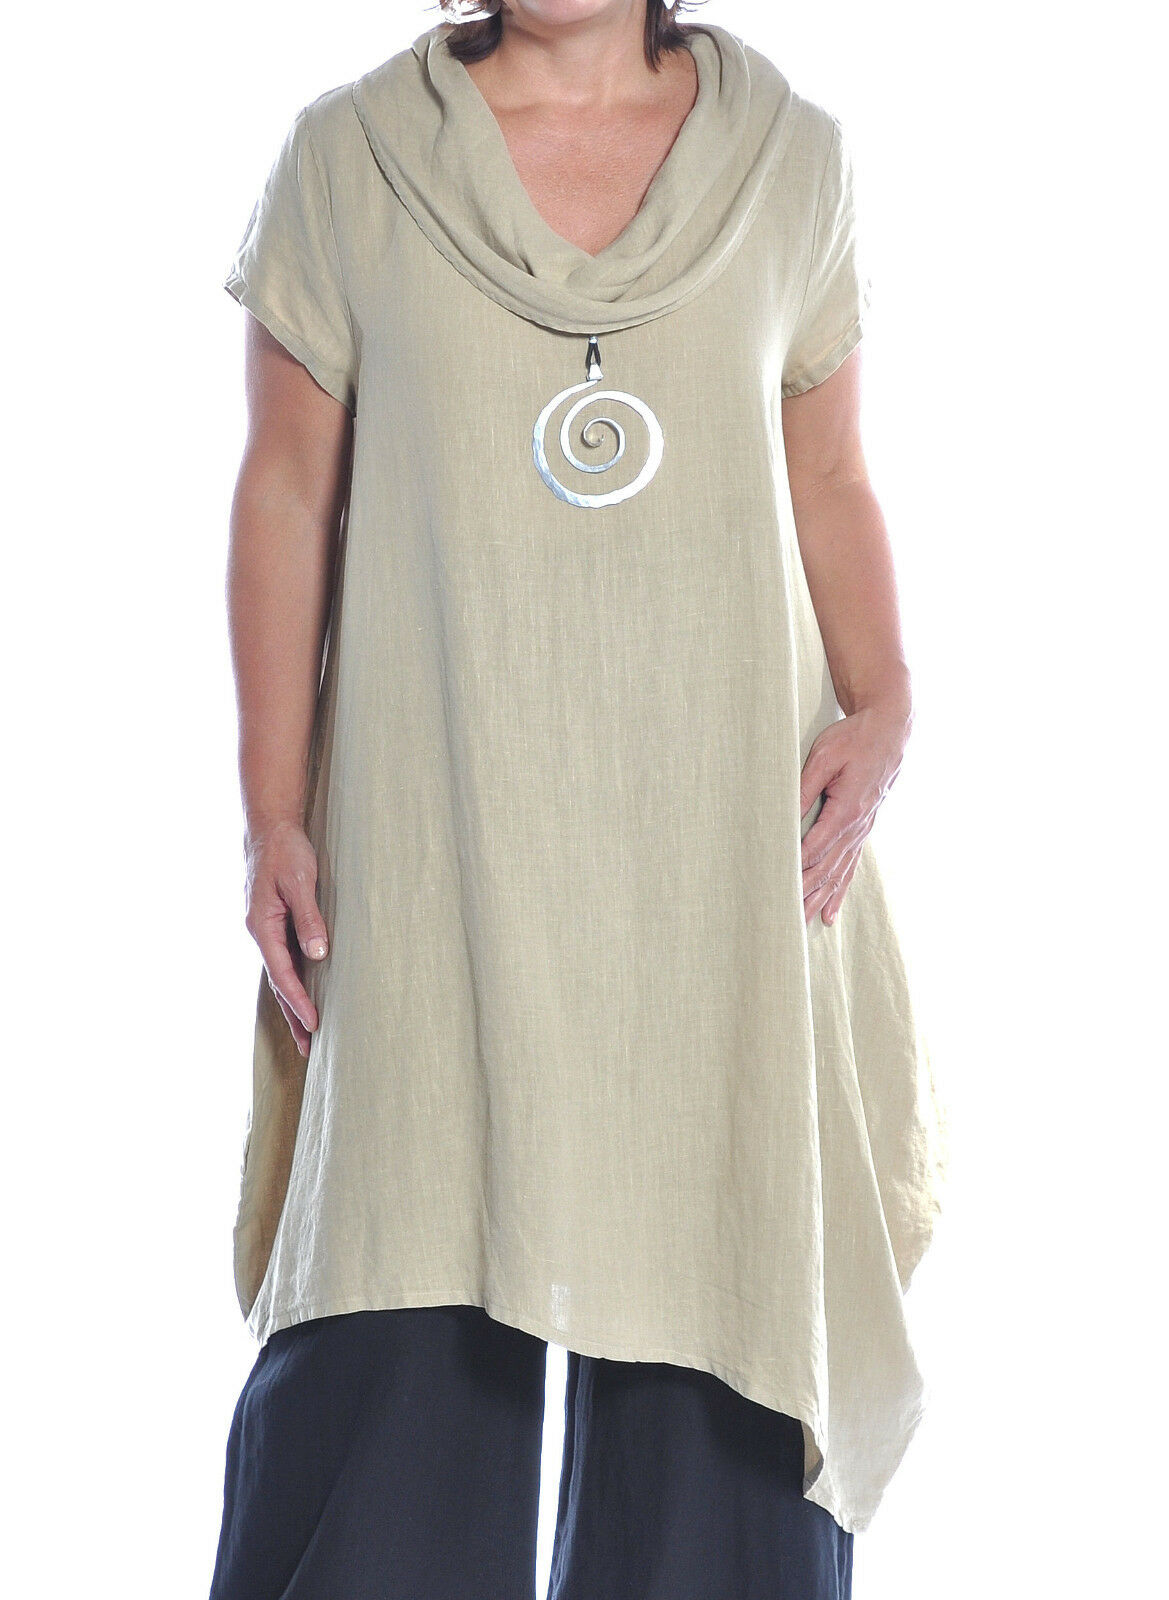 MOSAIC USA 720 Midweight Linen COWL NECK DRESS Long w// Pockets  S M L XL WHITE